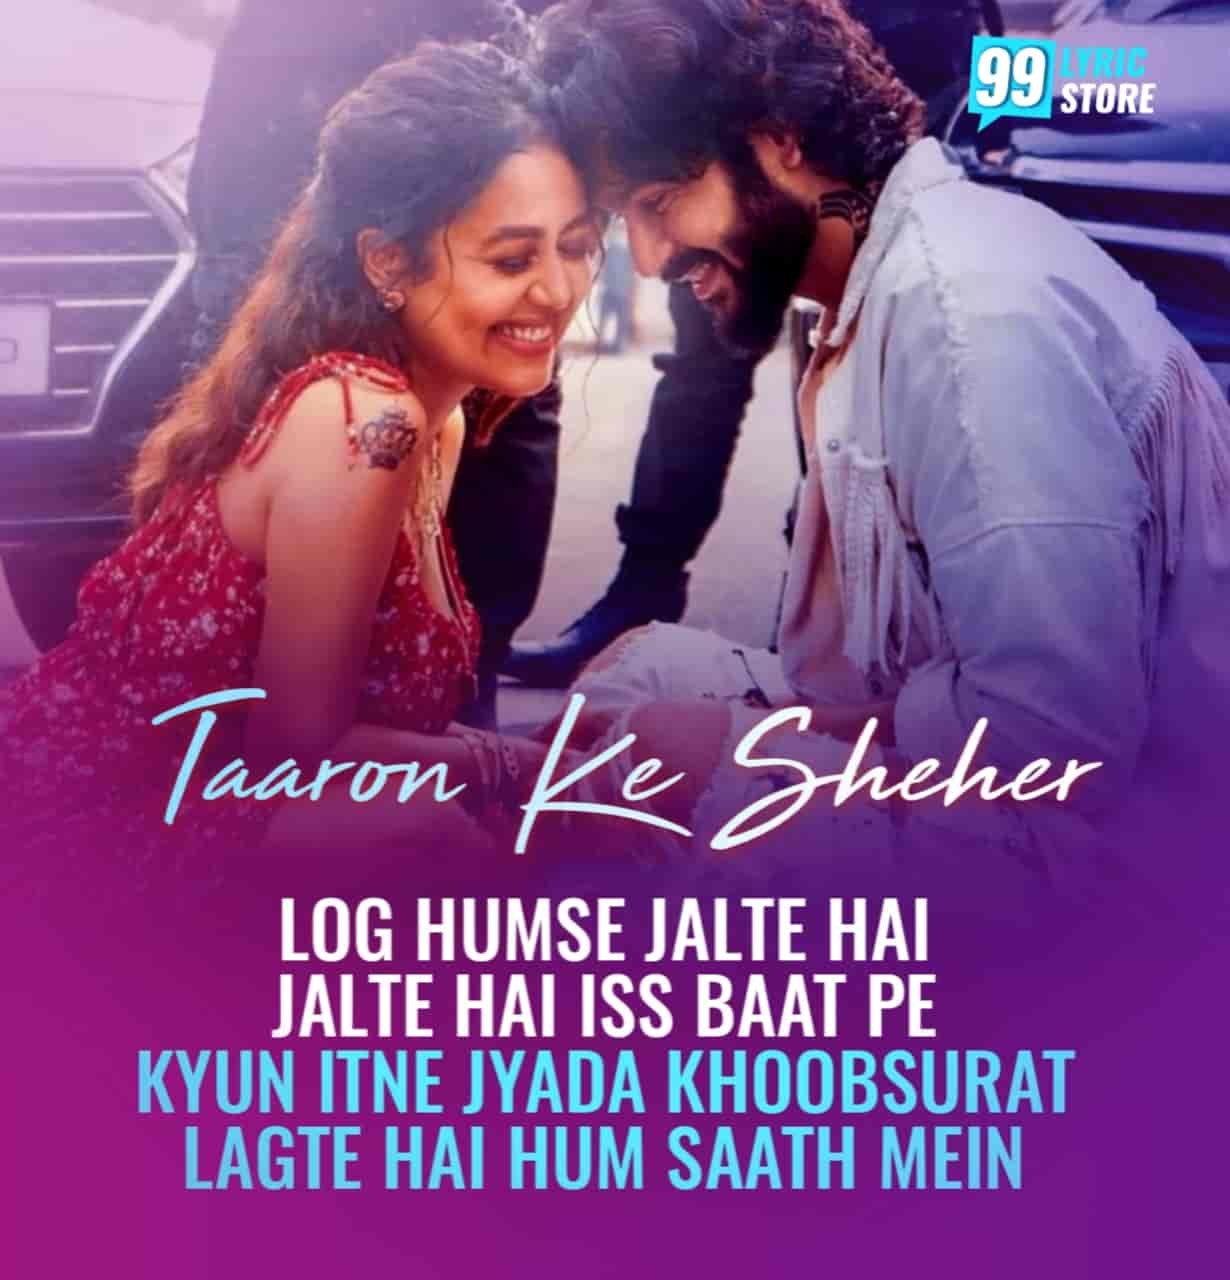 Indian artists Neha Kakkar and Jubin Nautiyal given their melodious voices in a beautiful love song which is titled Taaron Ke Sheher has released.